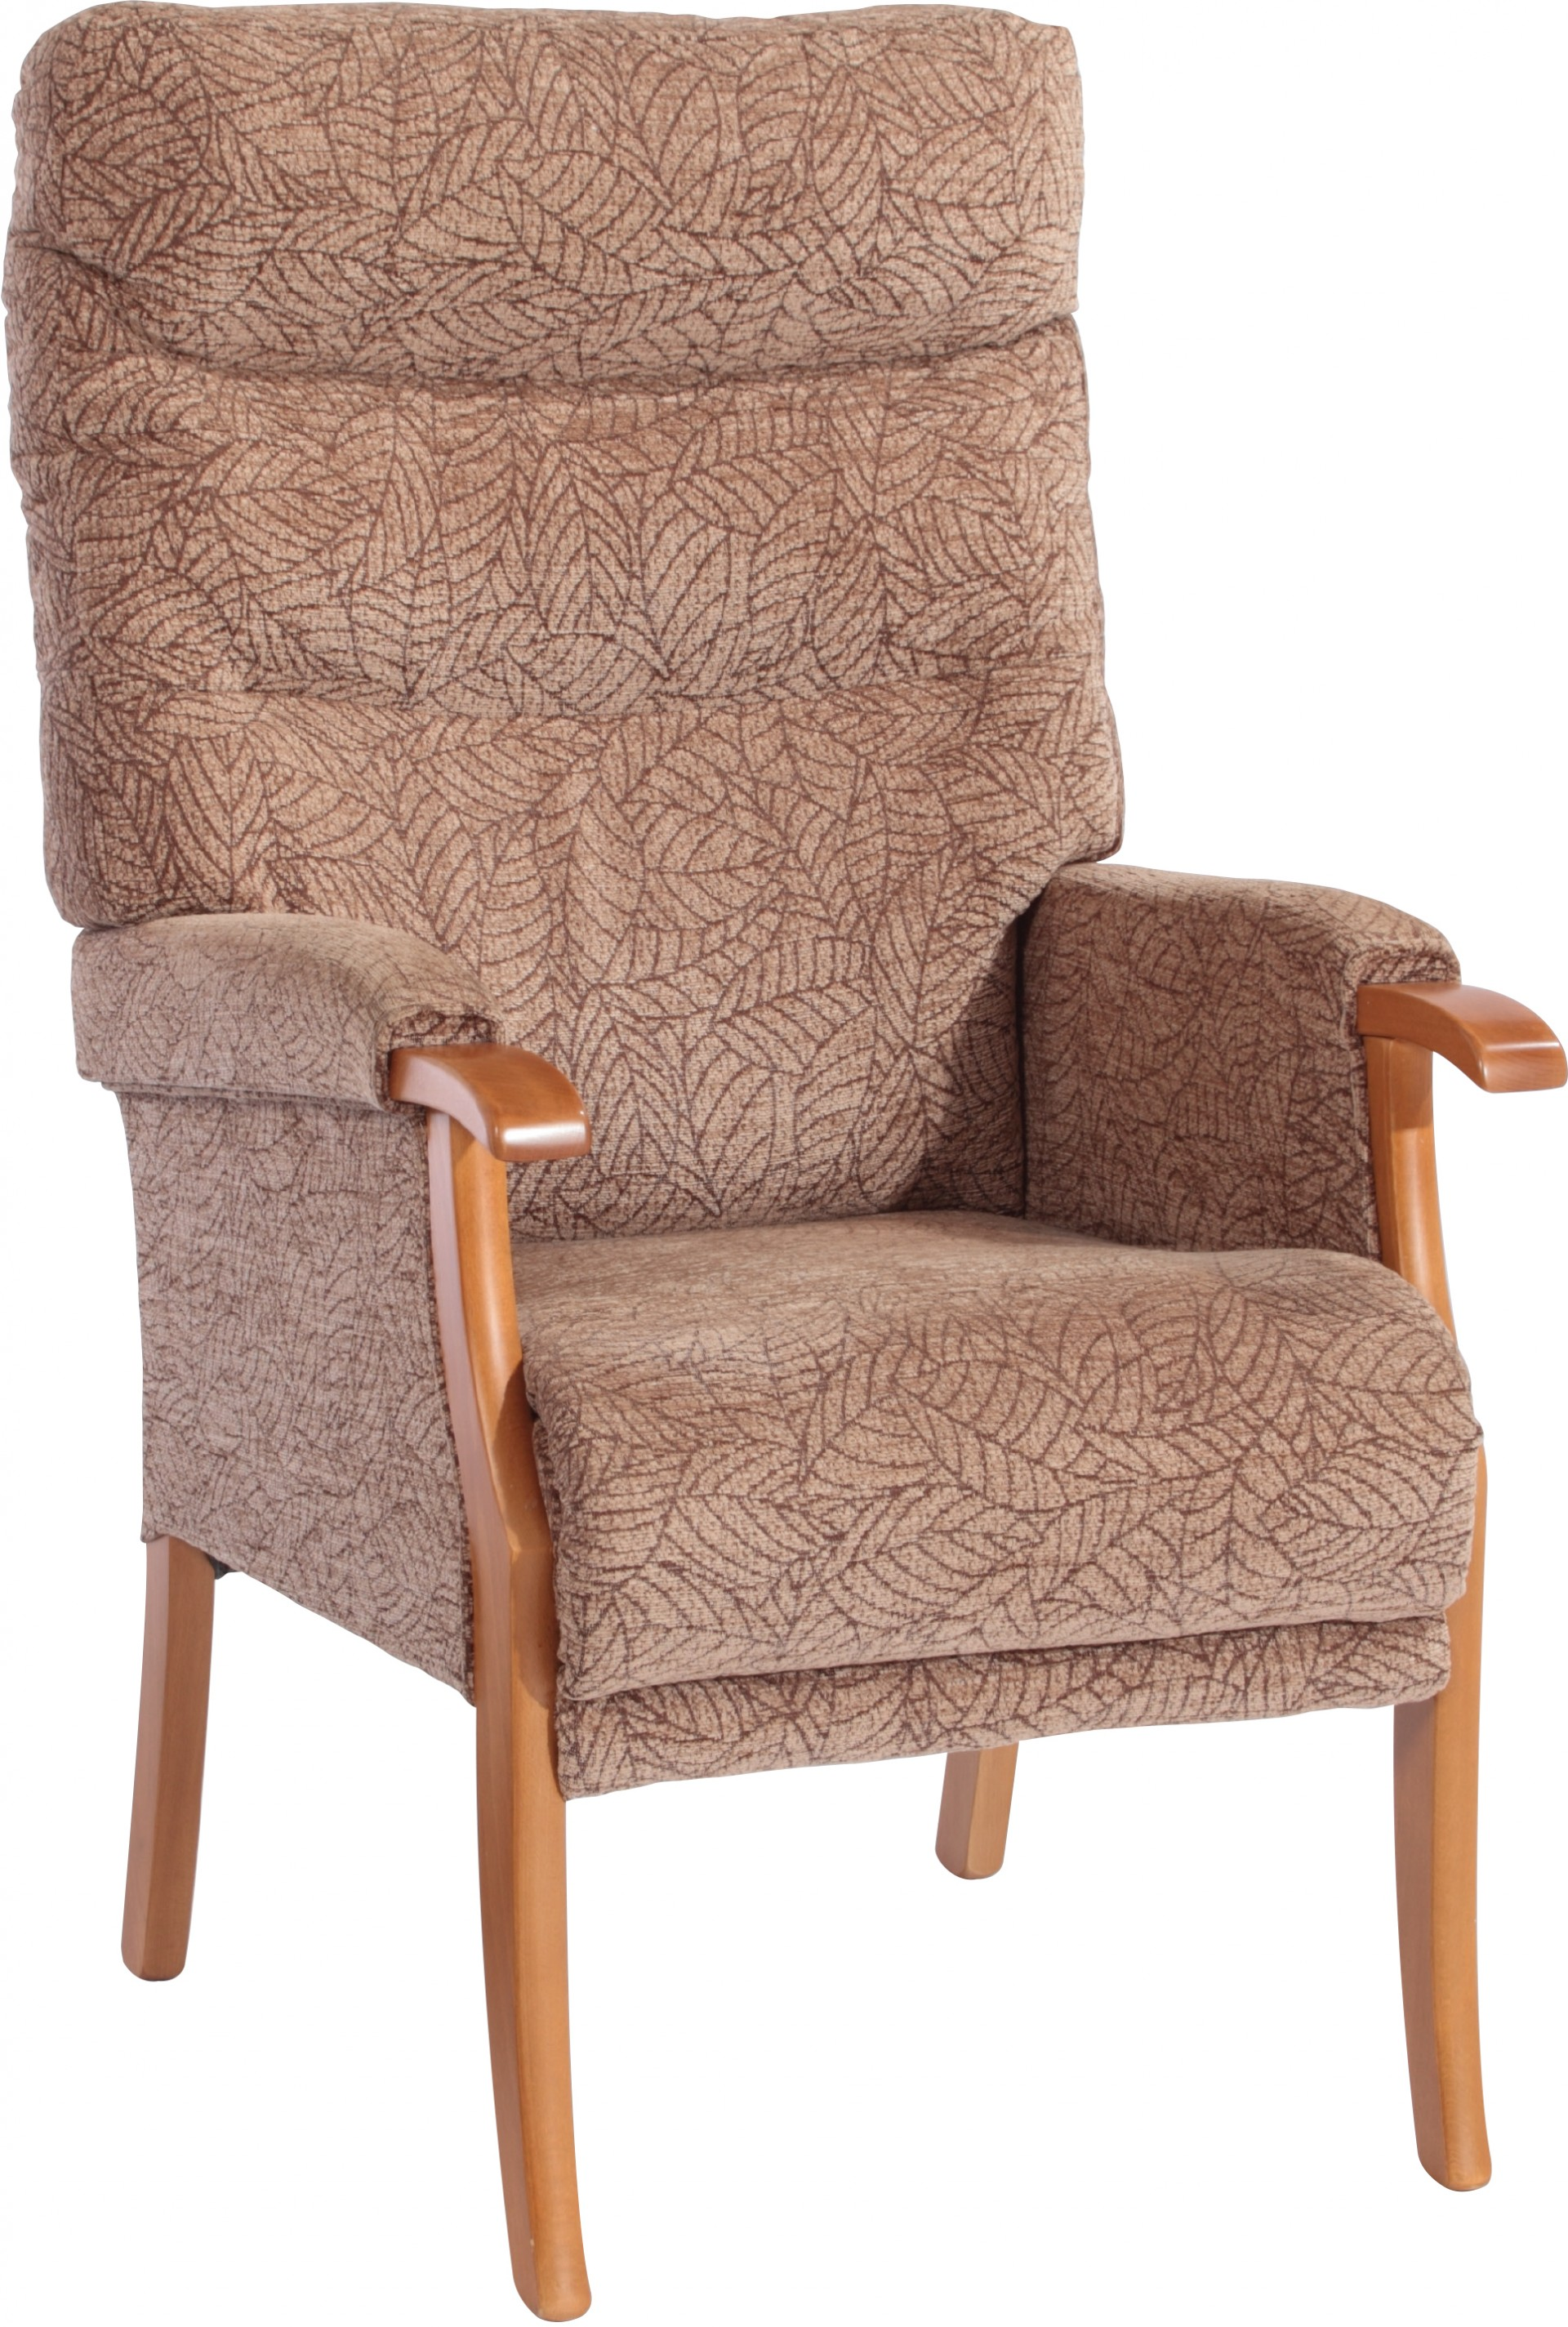 Ordinaire Orwell Fireside Chair Leaf Cocoa